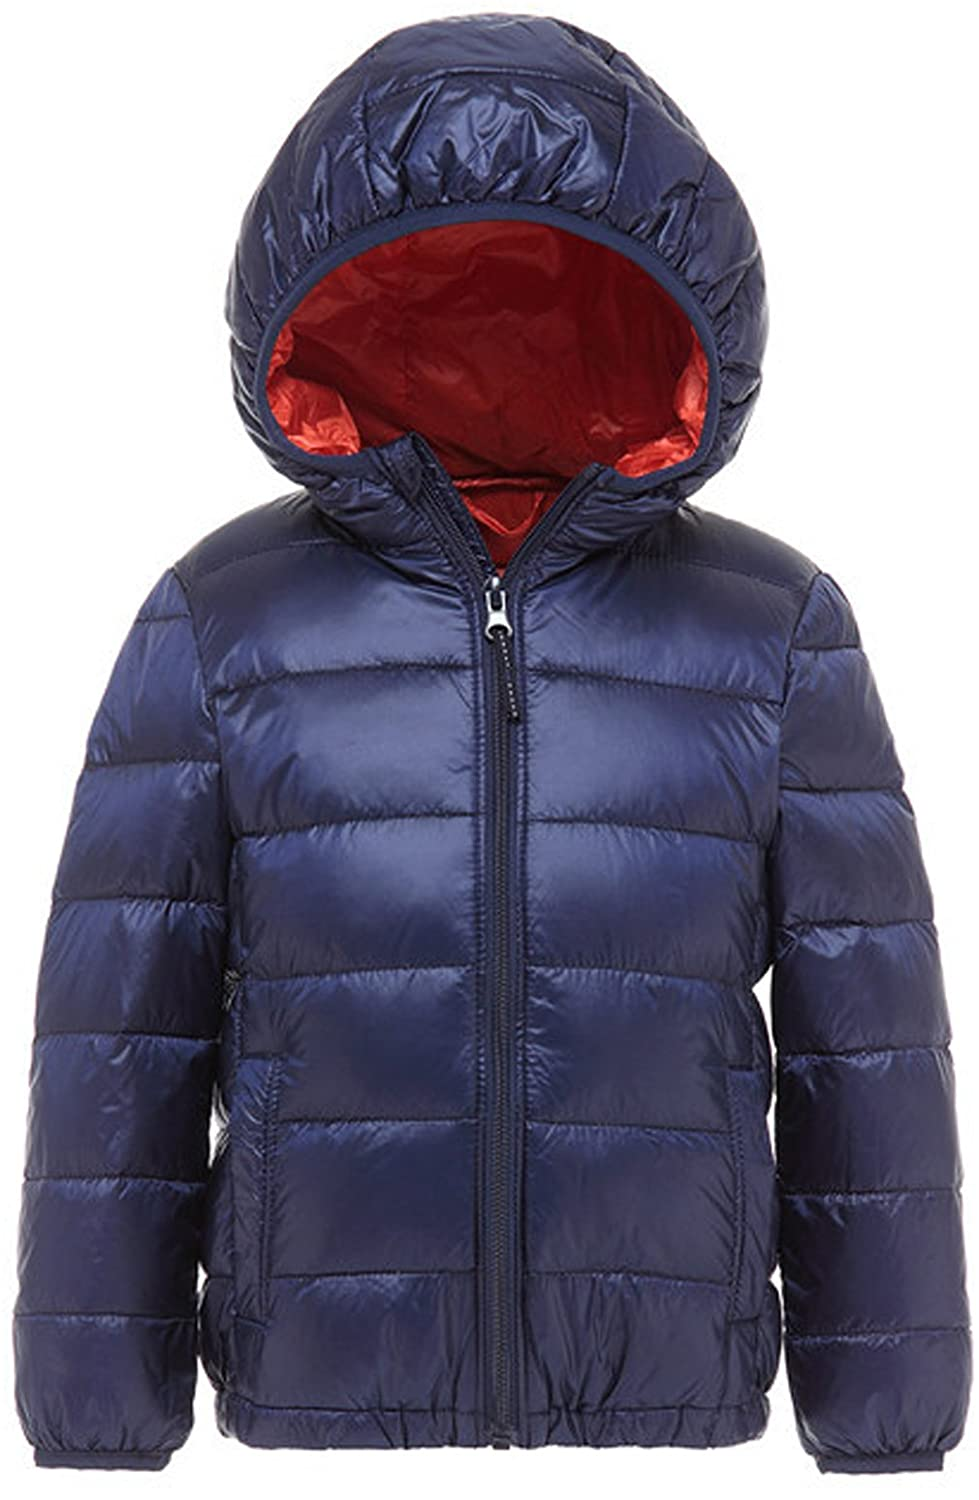 Wenseny Down Jack Boys Girls Winter Packable Quilted Lightweight Hoodie Down Jacket 8 Color Available ace011